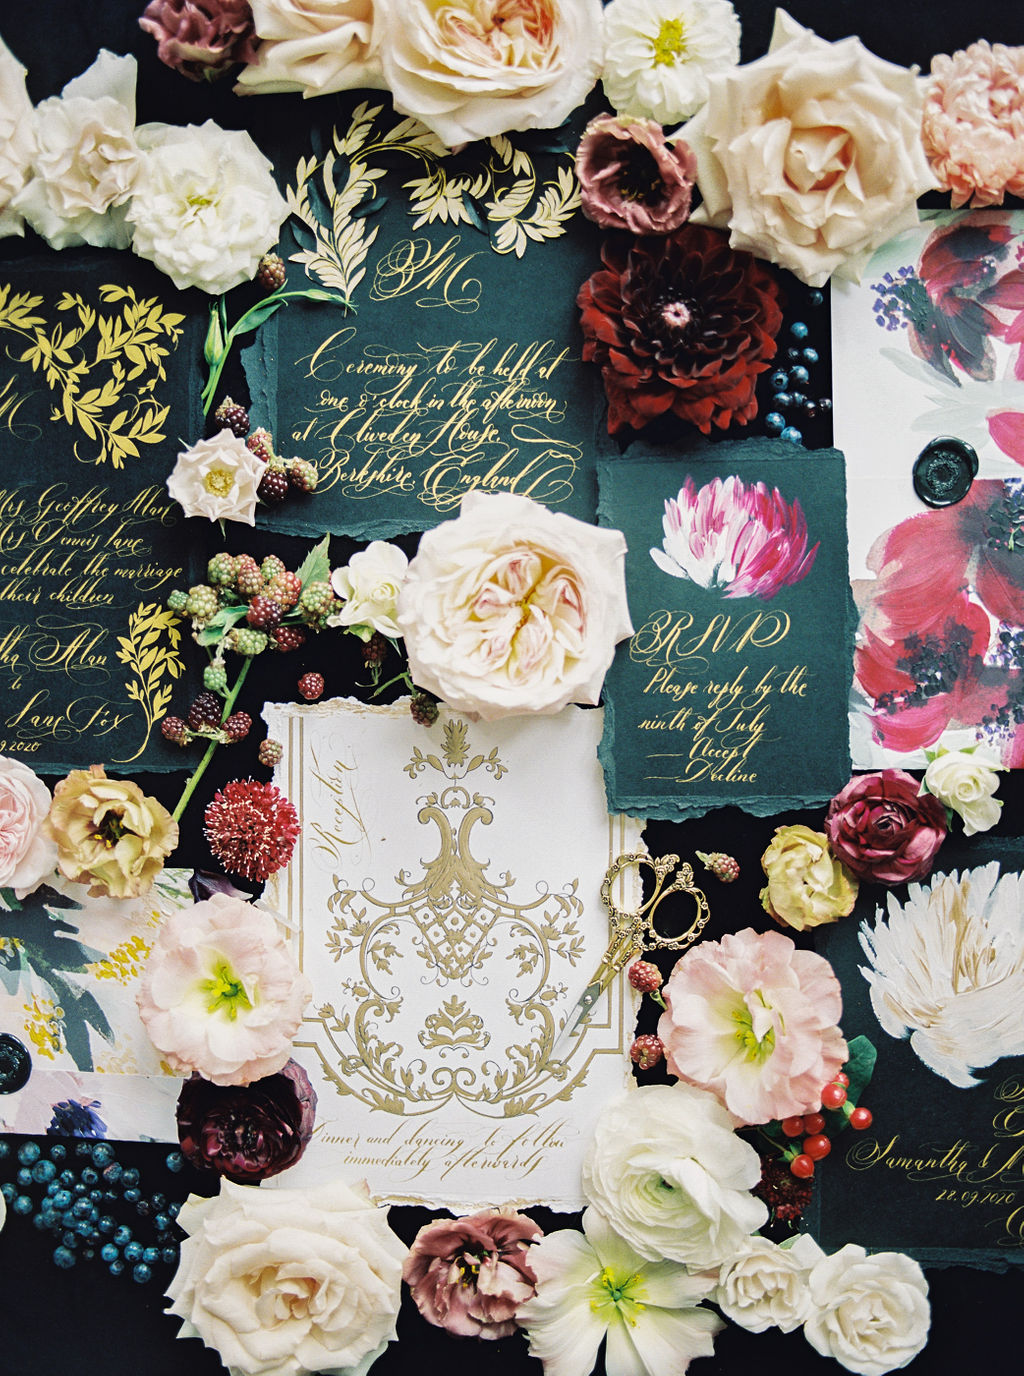 Striking and dramatic black and gold classical and moody wedding stationery for hihg end events and weddings in the south of France or Lake Como